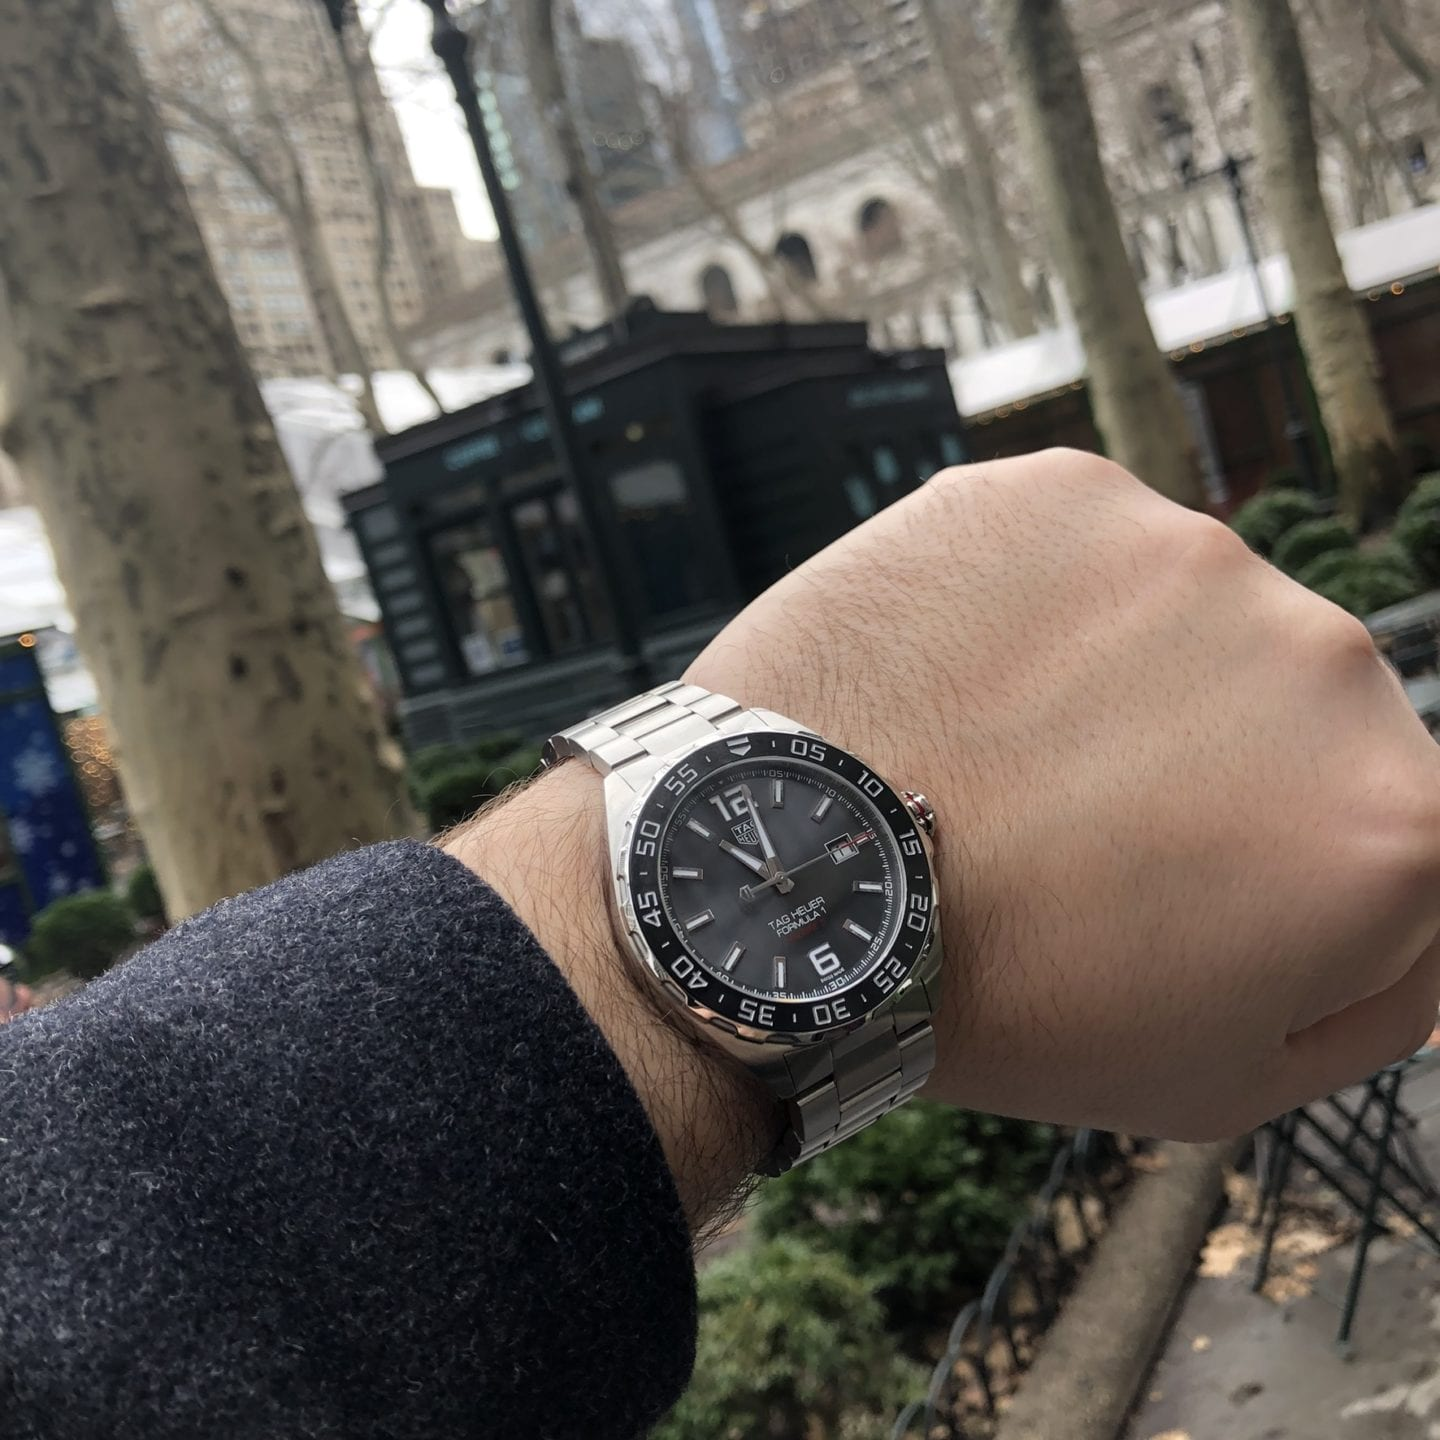 My Tag Heuer buying experience